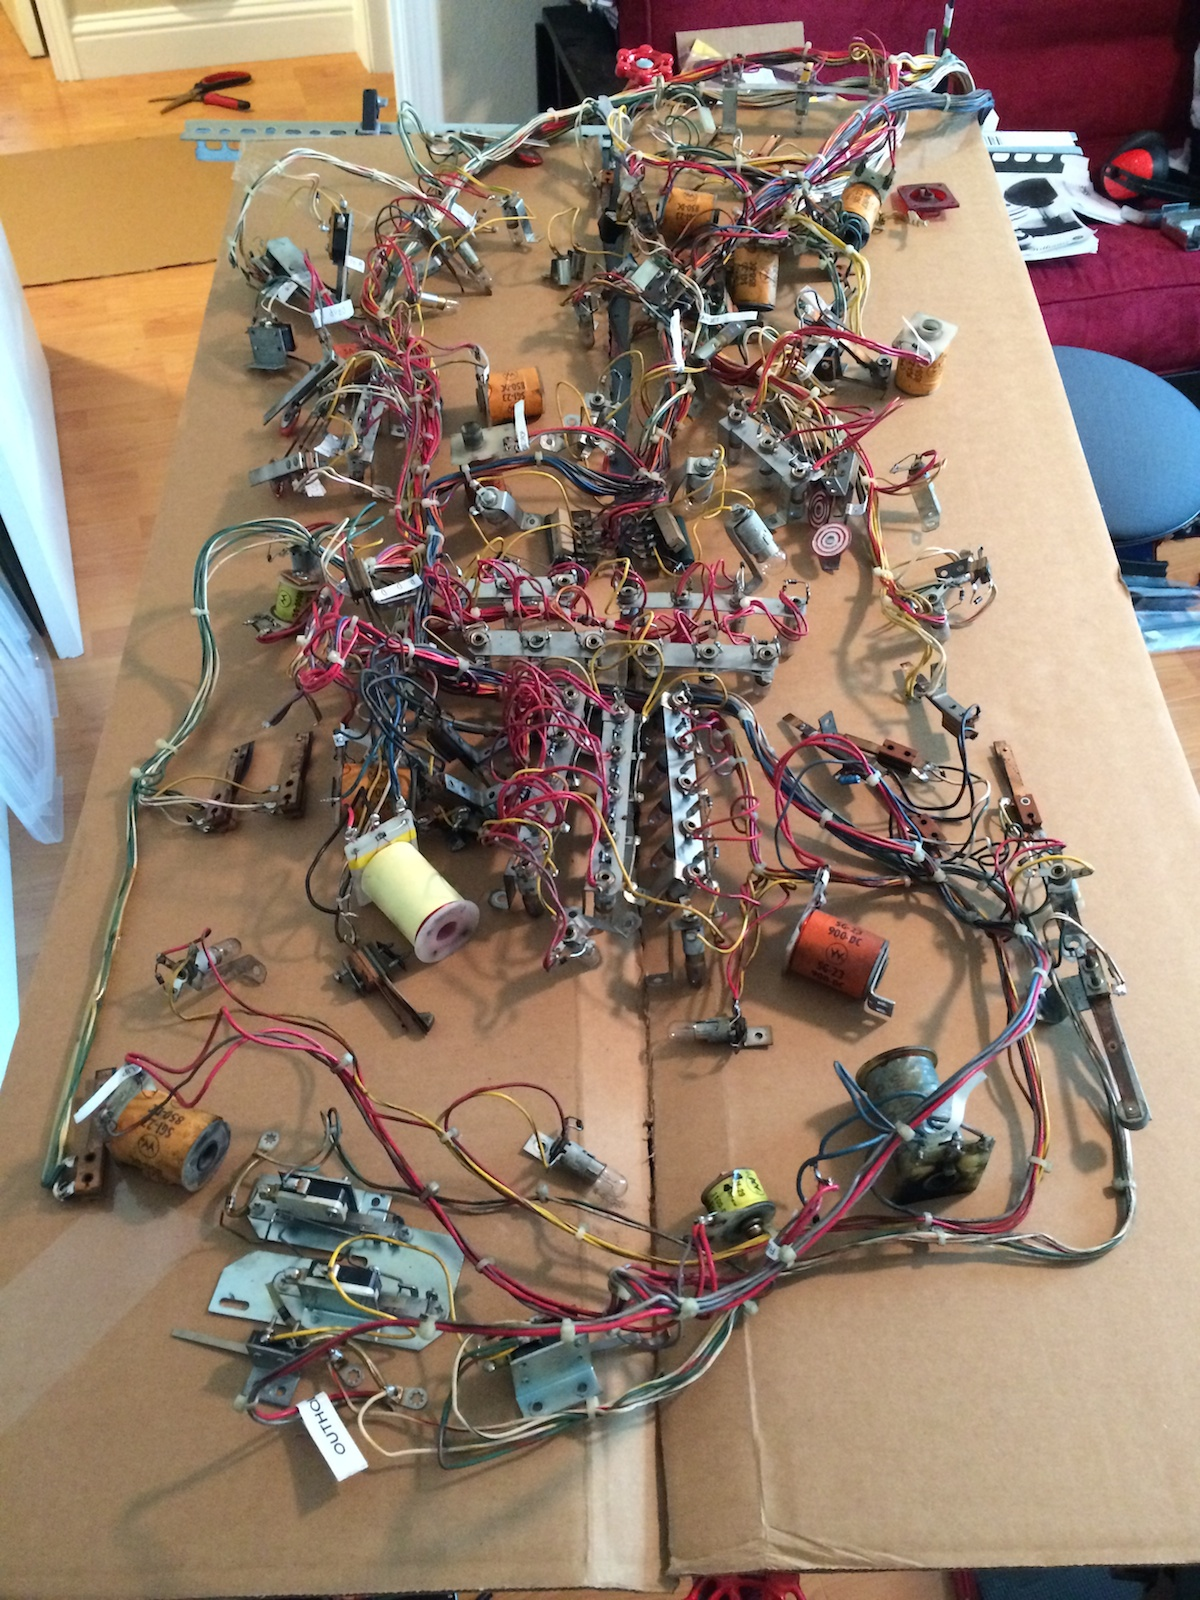 transferredwiringharness 4 transferred space shuttle pinball wiring harness from old to new